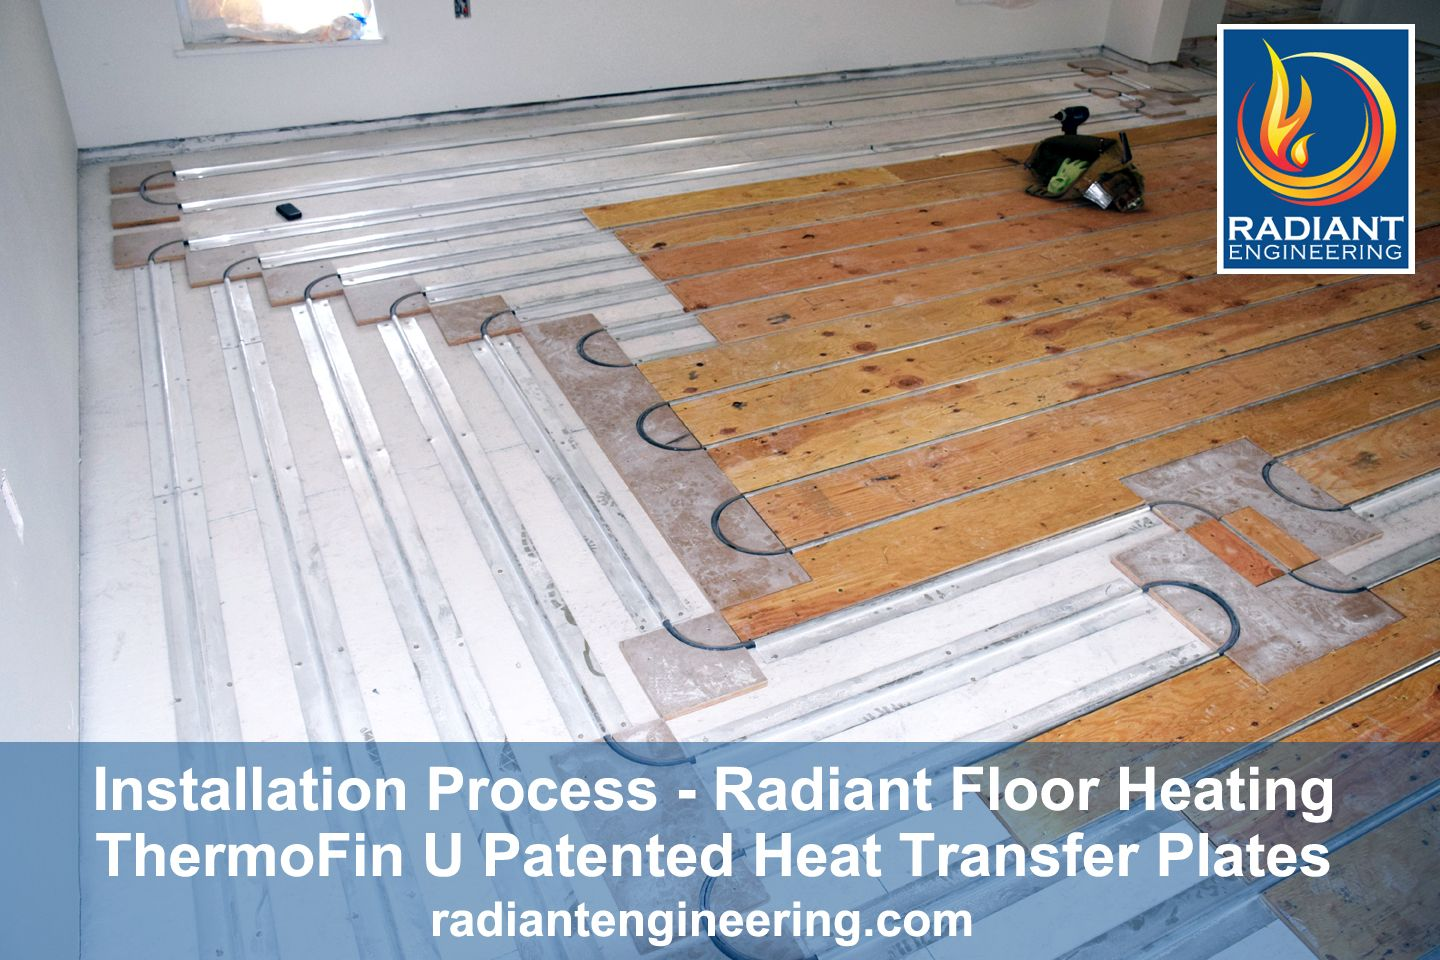 Thermofin U Is Installed On Top Of The Sub Floor Or In Walls Or